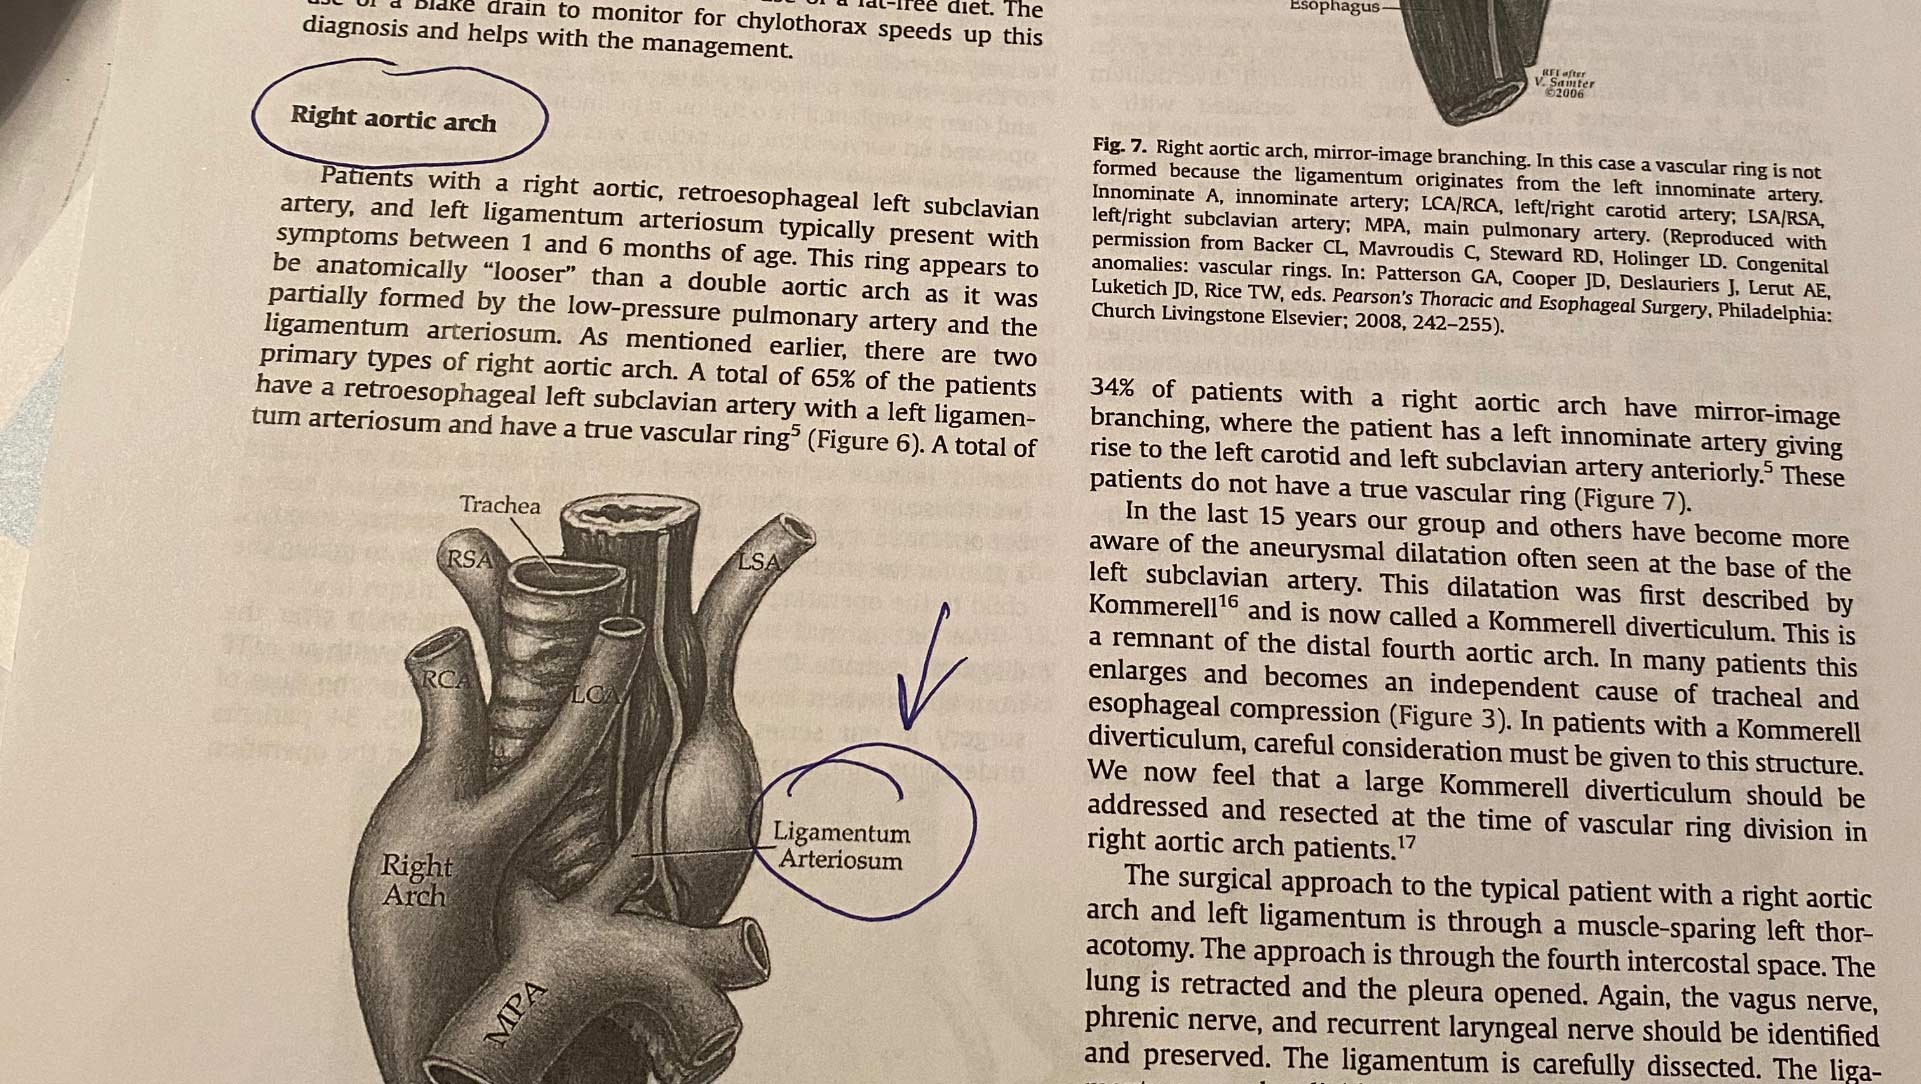 A close-up of a section of text in a printed-out cardiac seminar paper, describing the right aortic arch of the heart, with circled notes and arrows indicating specific places to note.